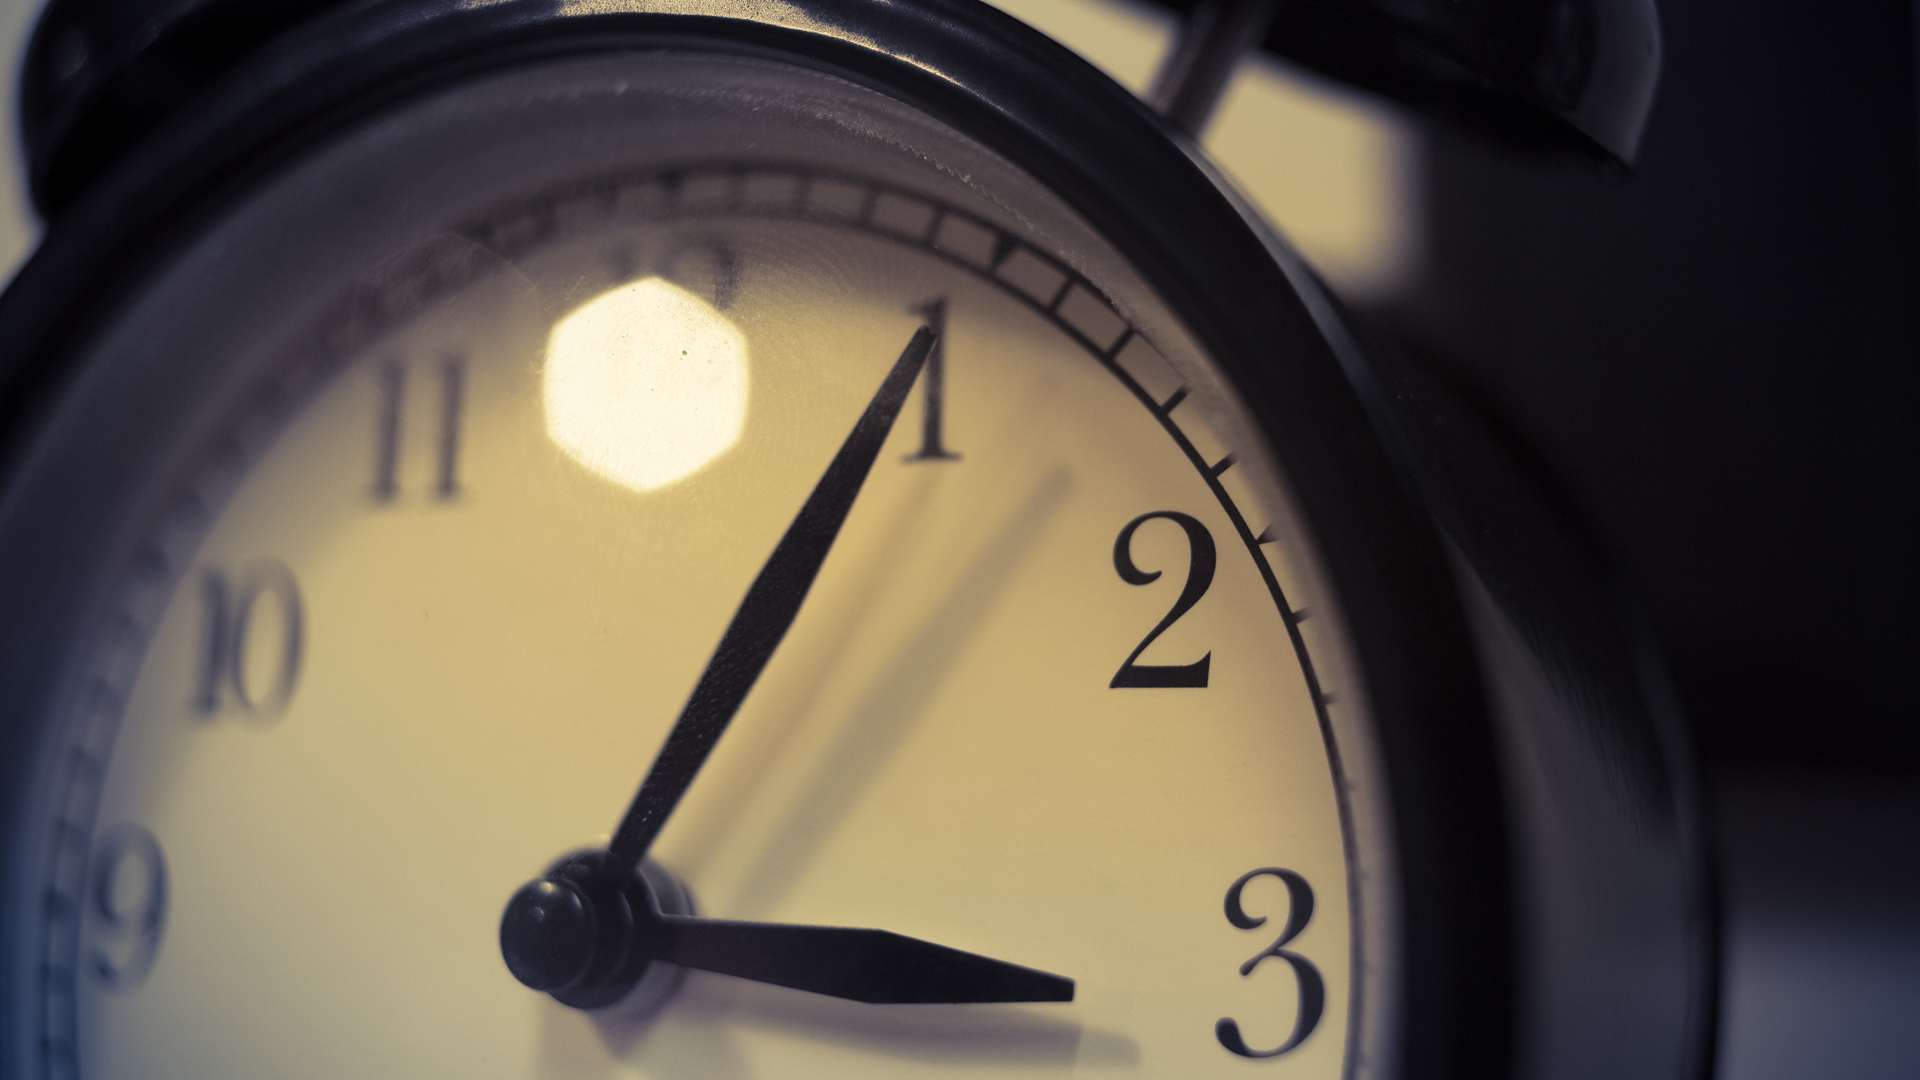 A clock is seen in a file photo. (Credit: iStock / Getty Images Plus)